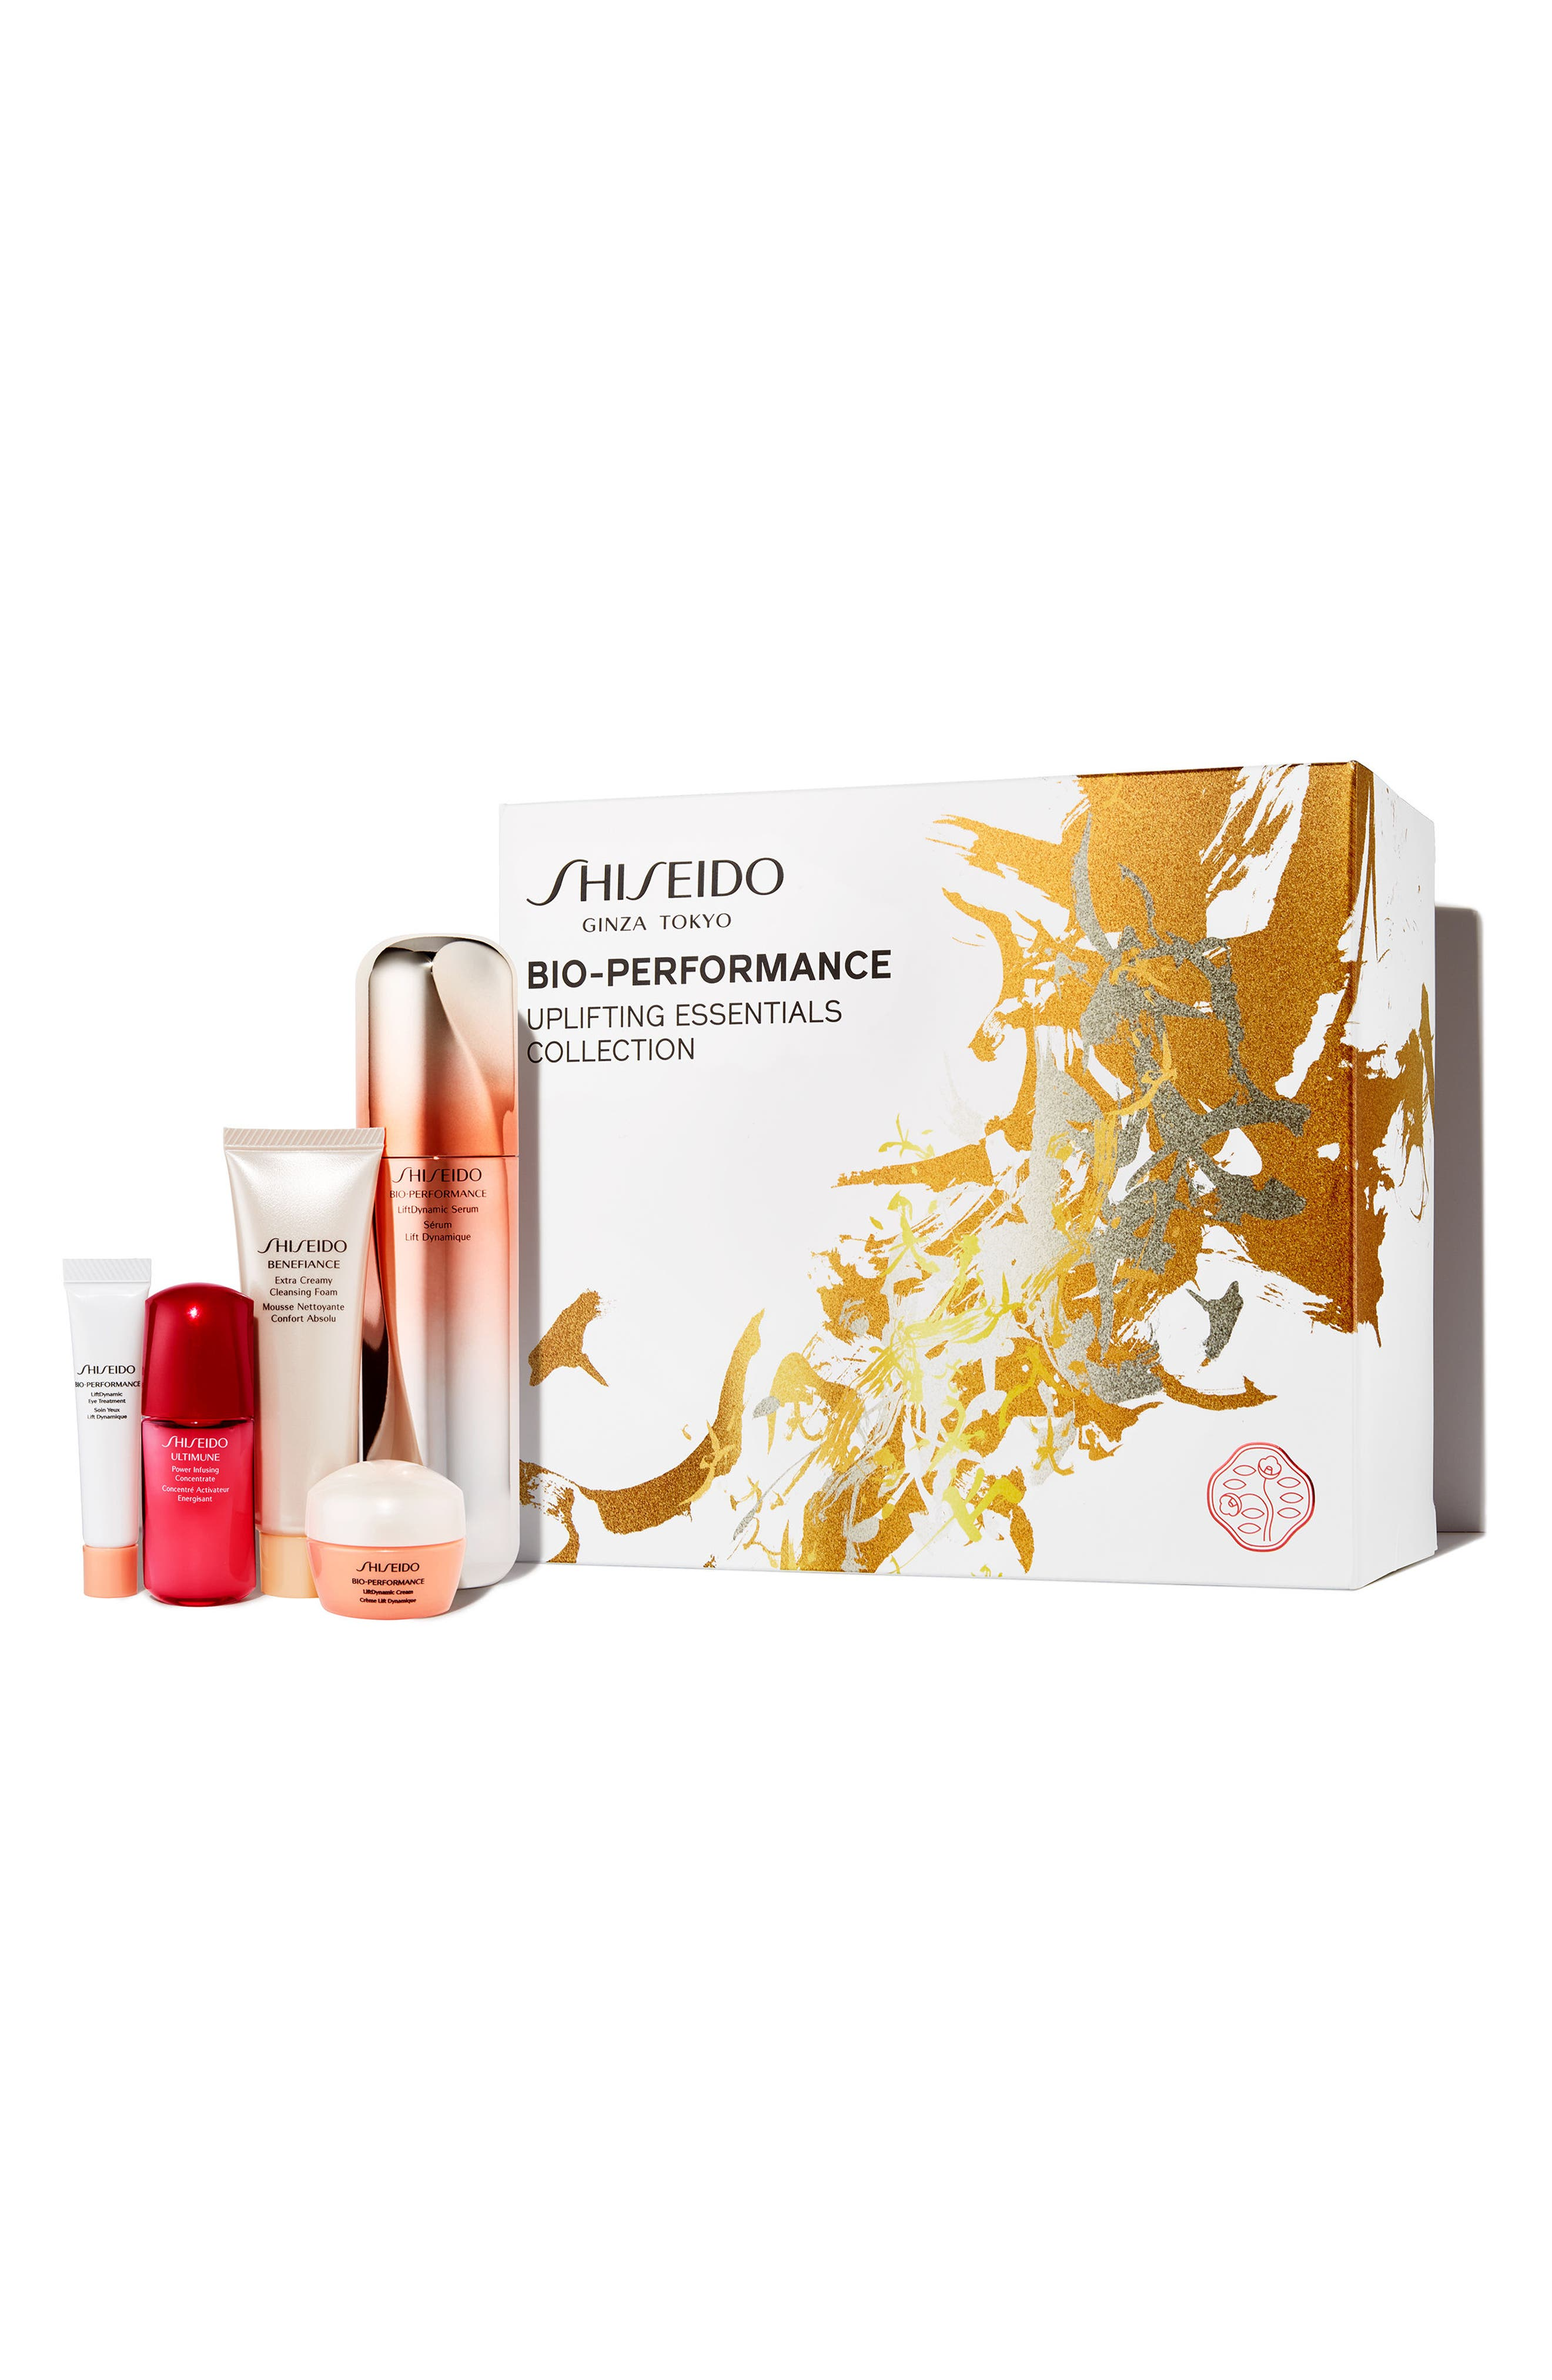 Shiseido Uplifting Essentials Collection ($206 Value)